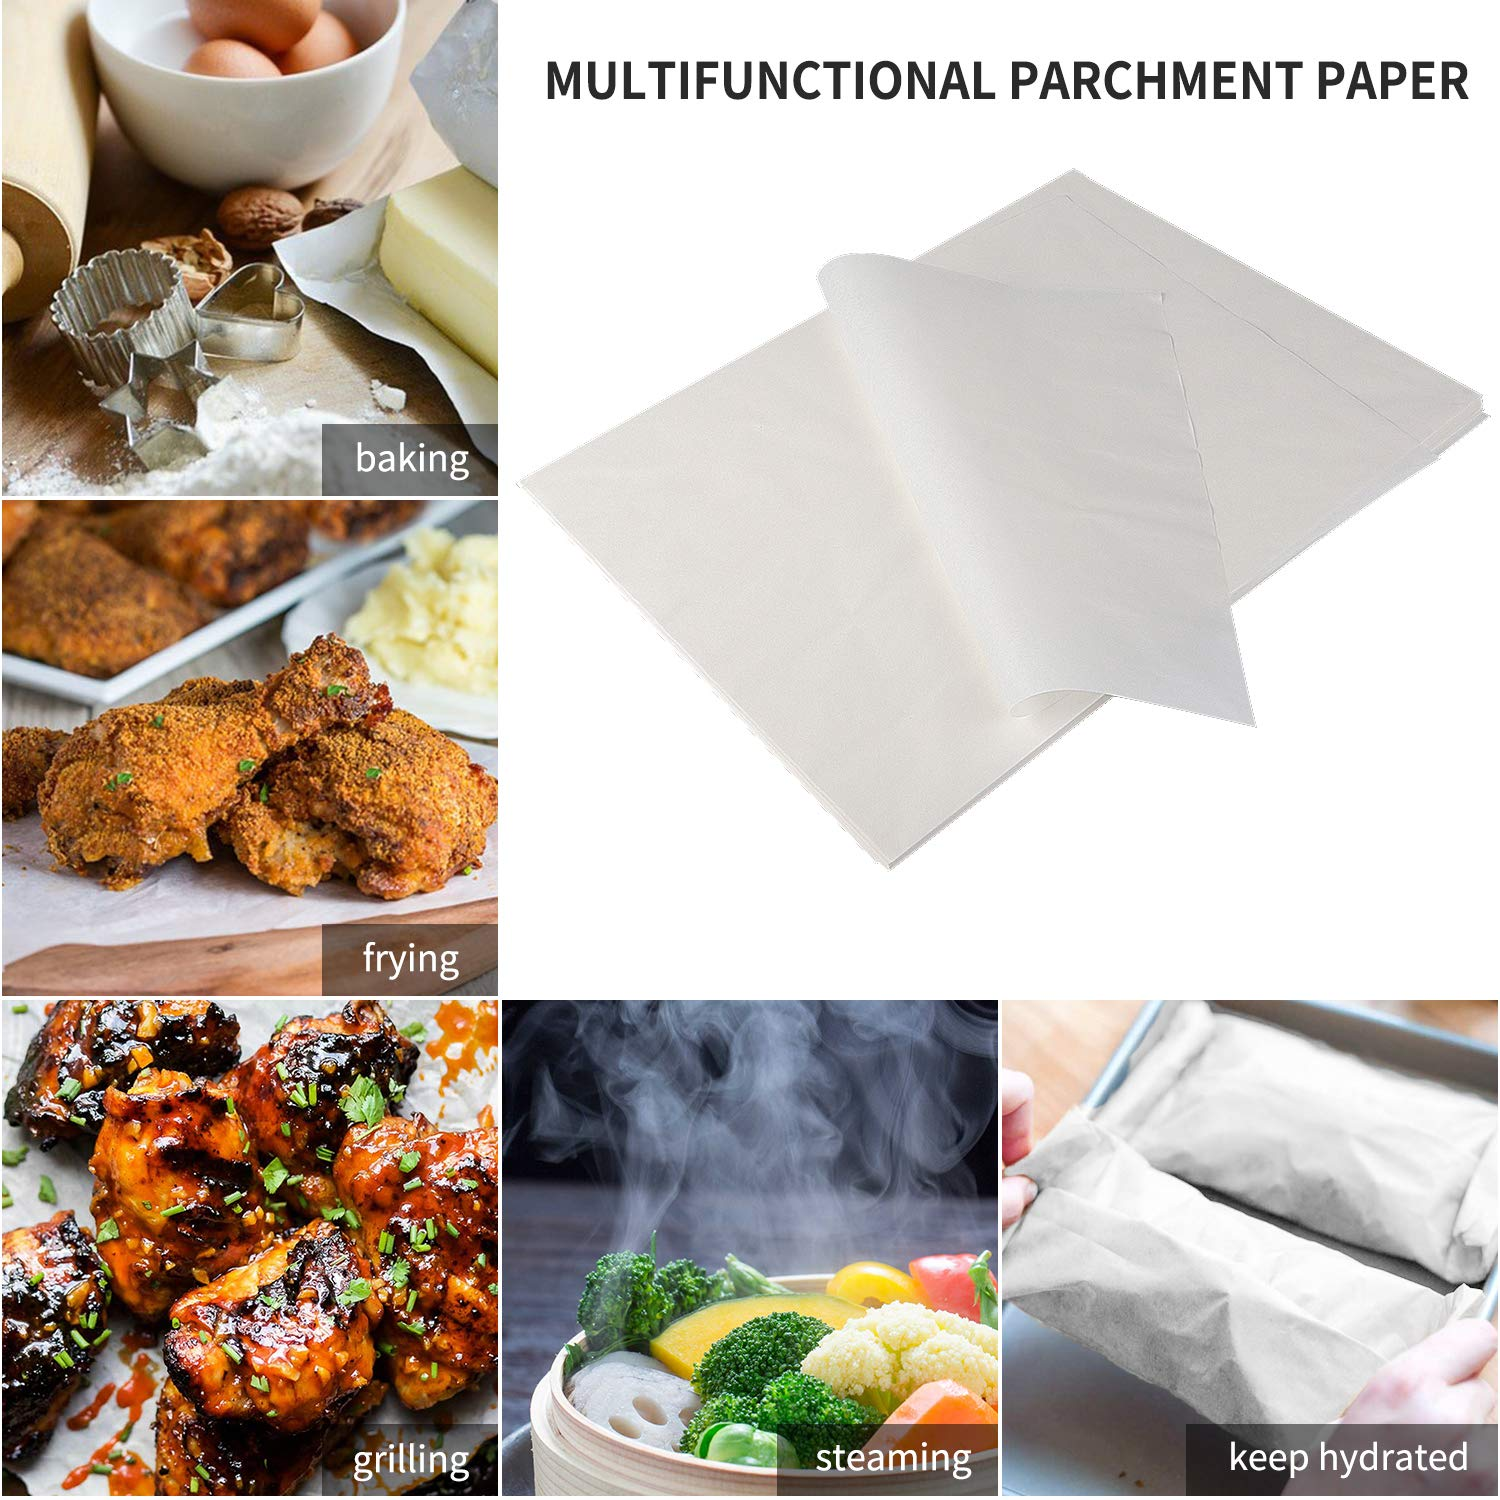 200-Pcs Parchment Paper Baking Sheets, SMARTAKE 12x16'' Non-Stick Precut Baking Parchment, Perfect for Baking Grilling Air Fryer Steaming Bread Cup Cake Cookie and More (White) by SMARTAKE (Image #2)